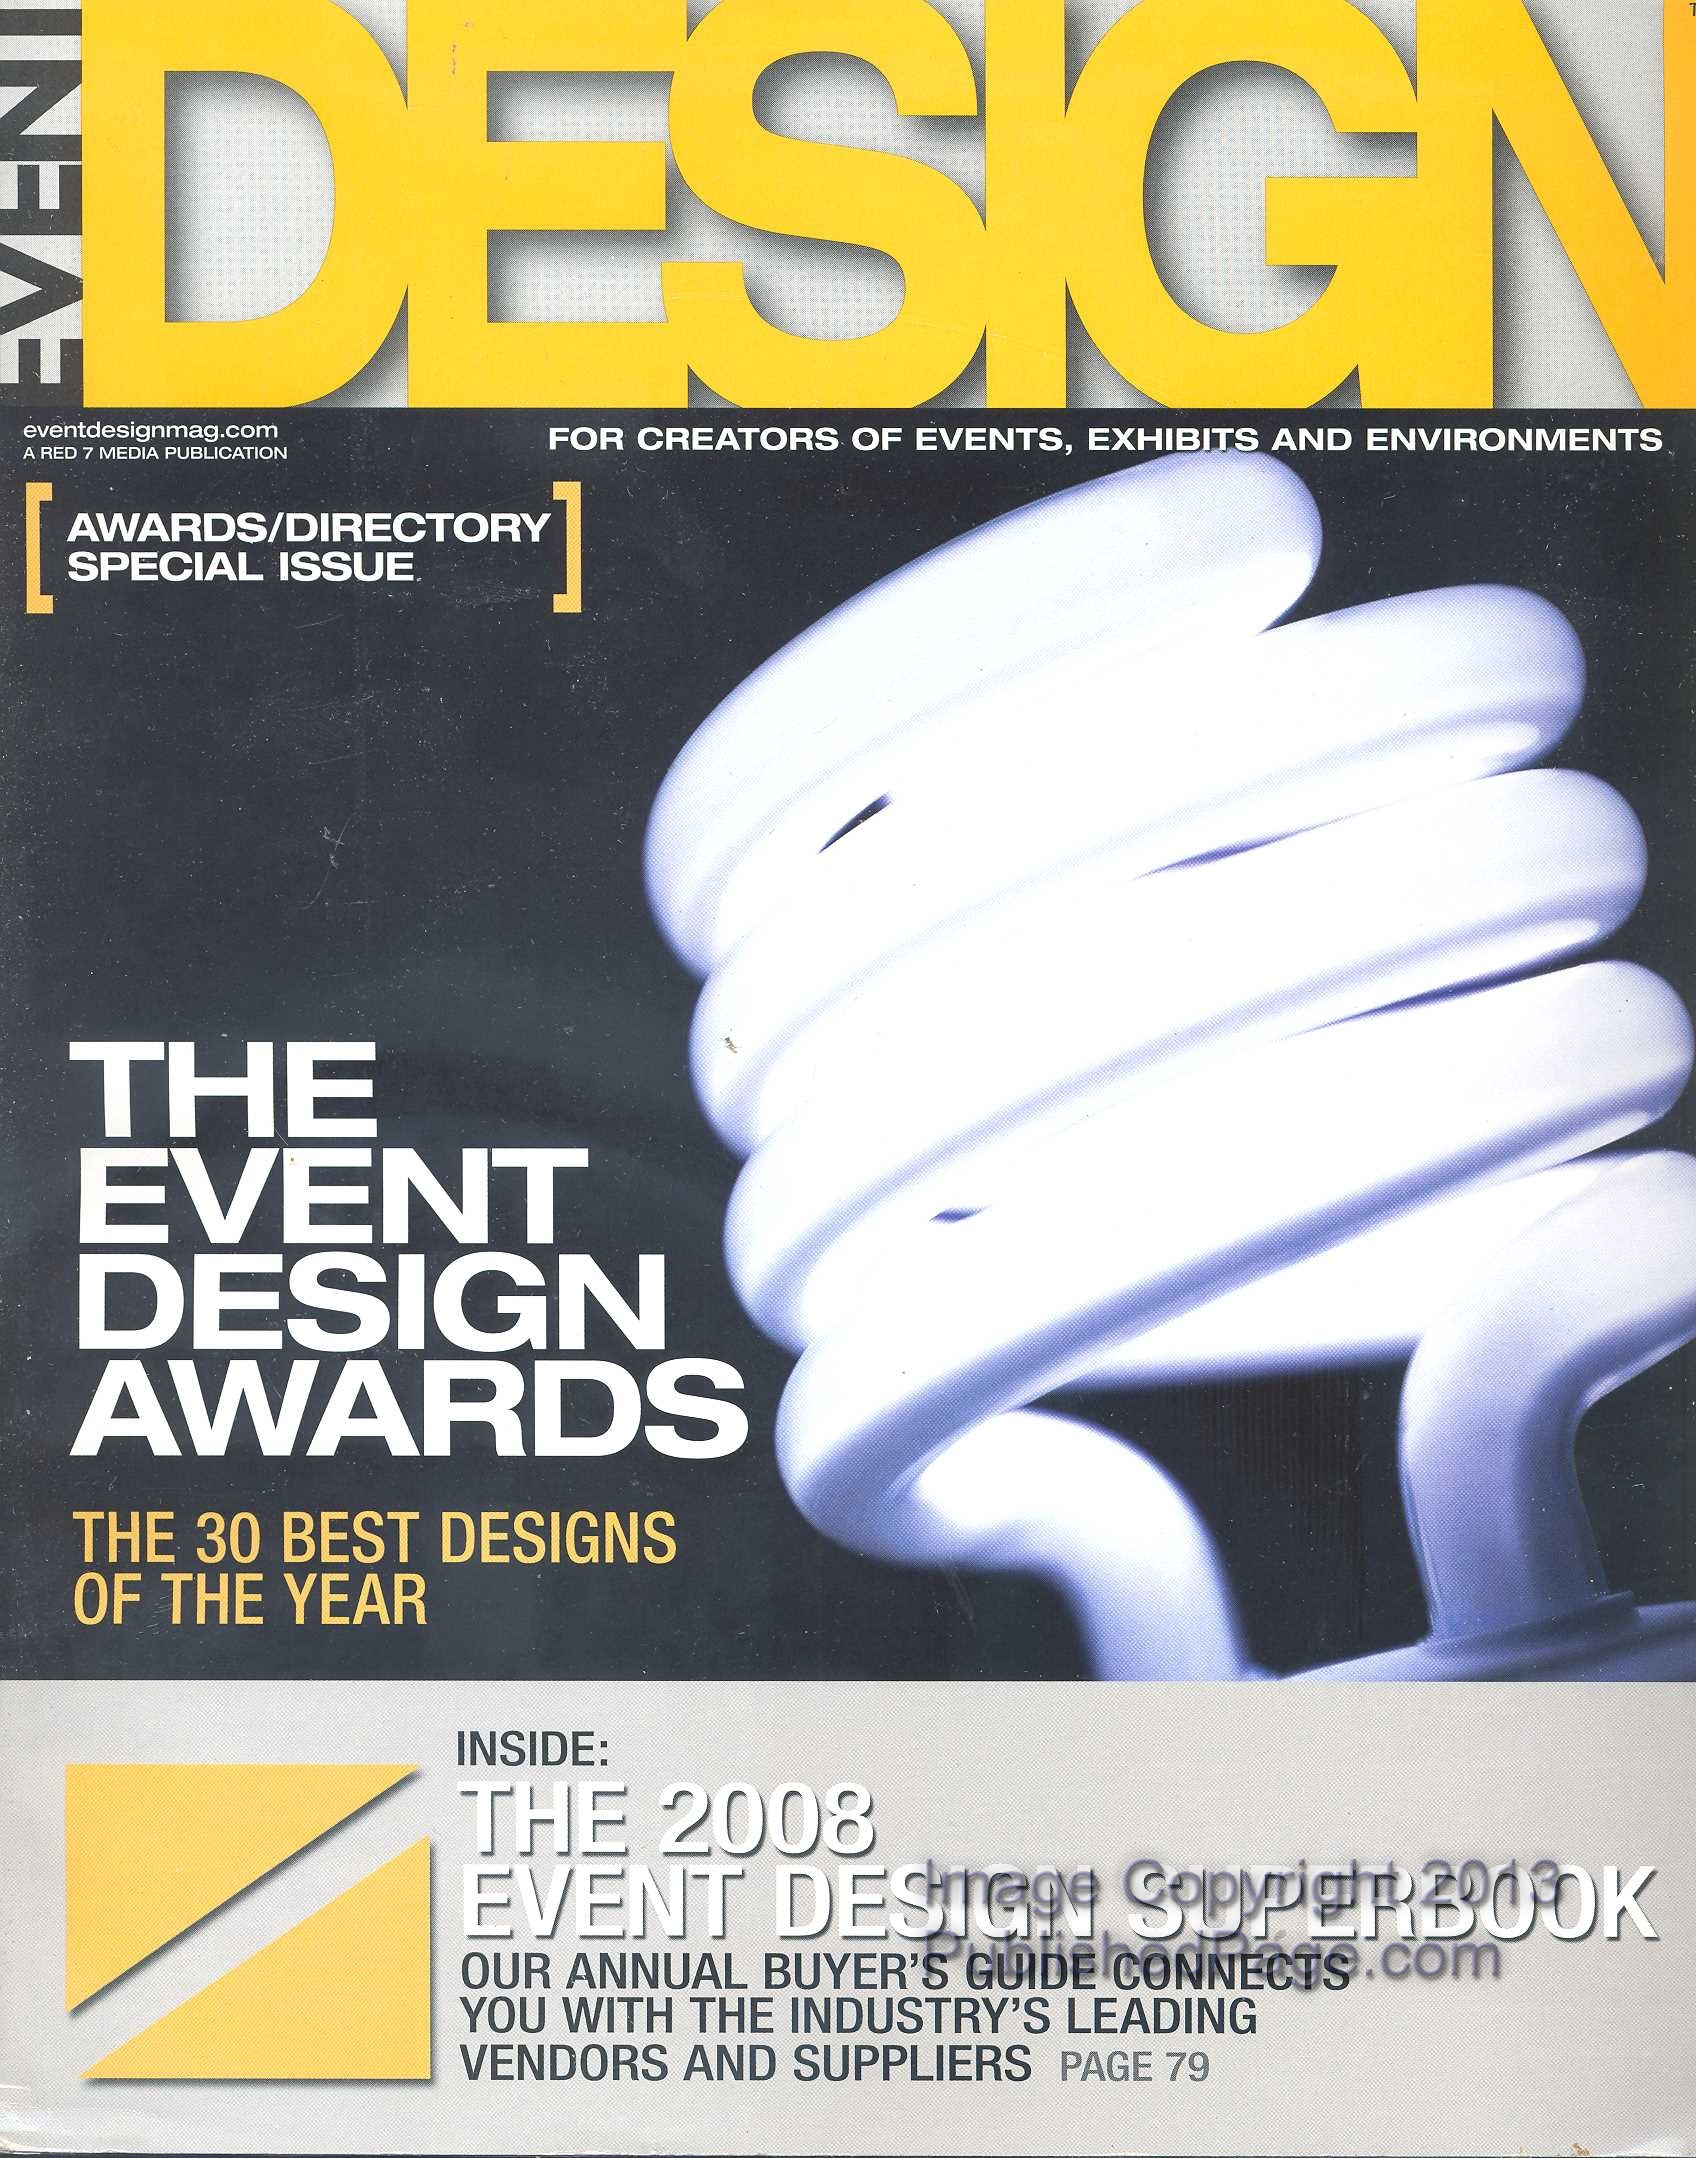 image of design magazine